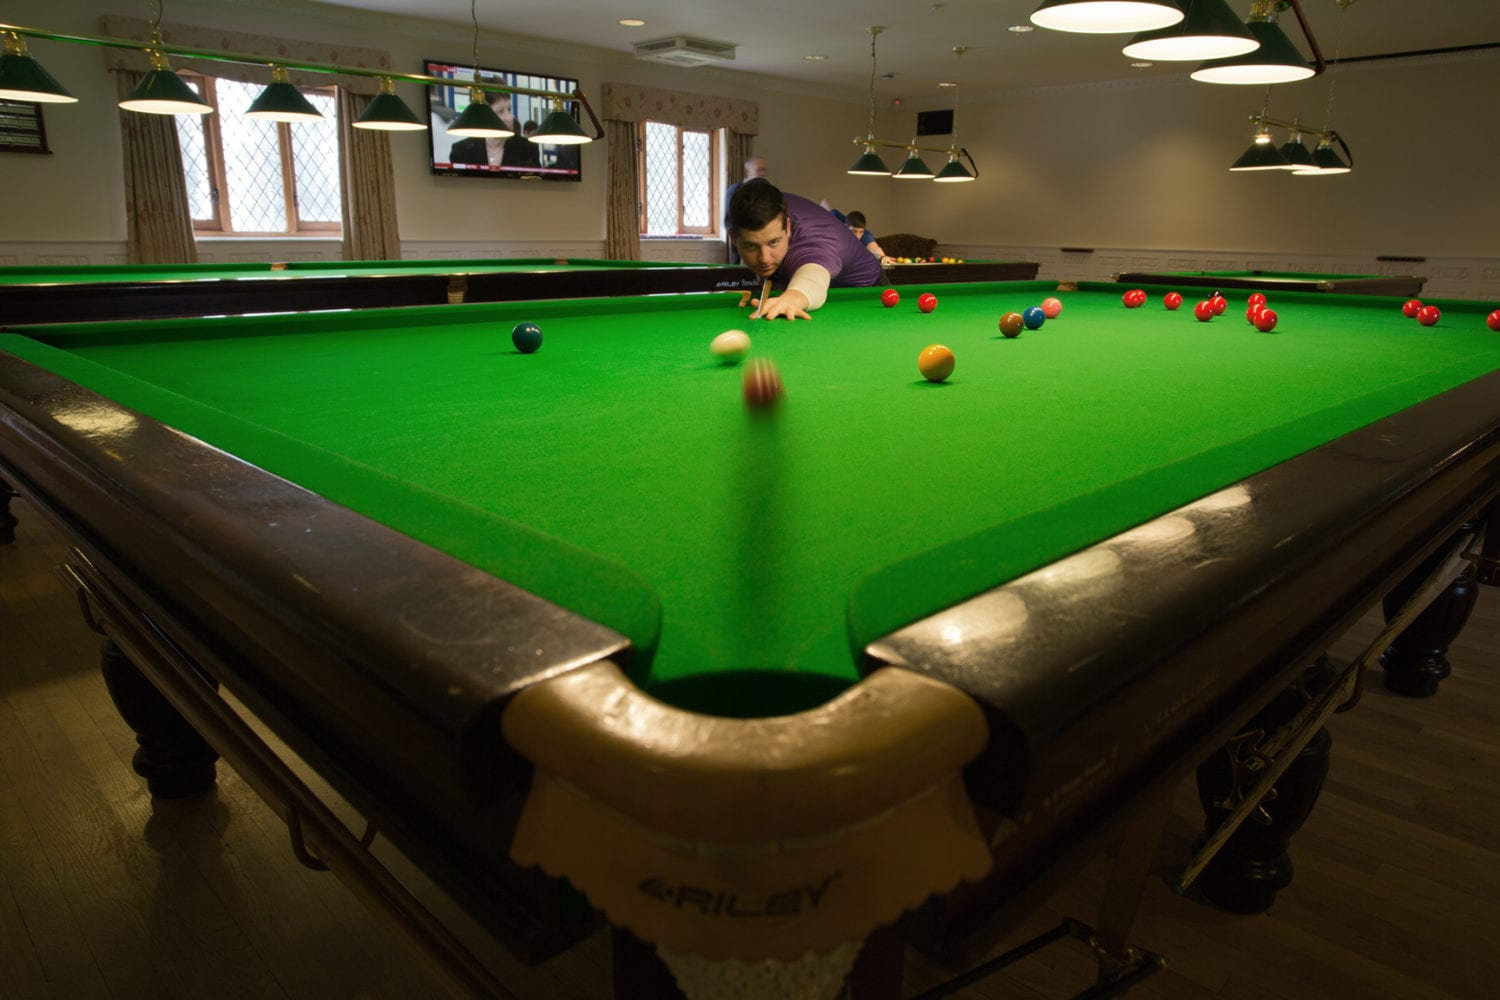 Snooker in South Wales, Pool tables in Cardiff - Man banking a shot on a snooker table